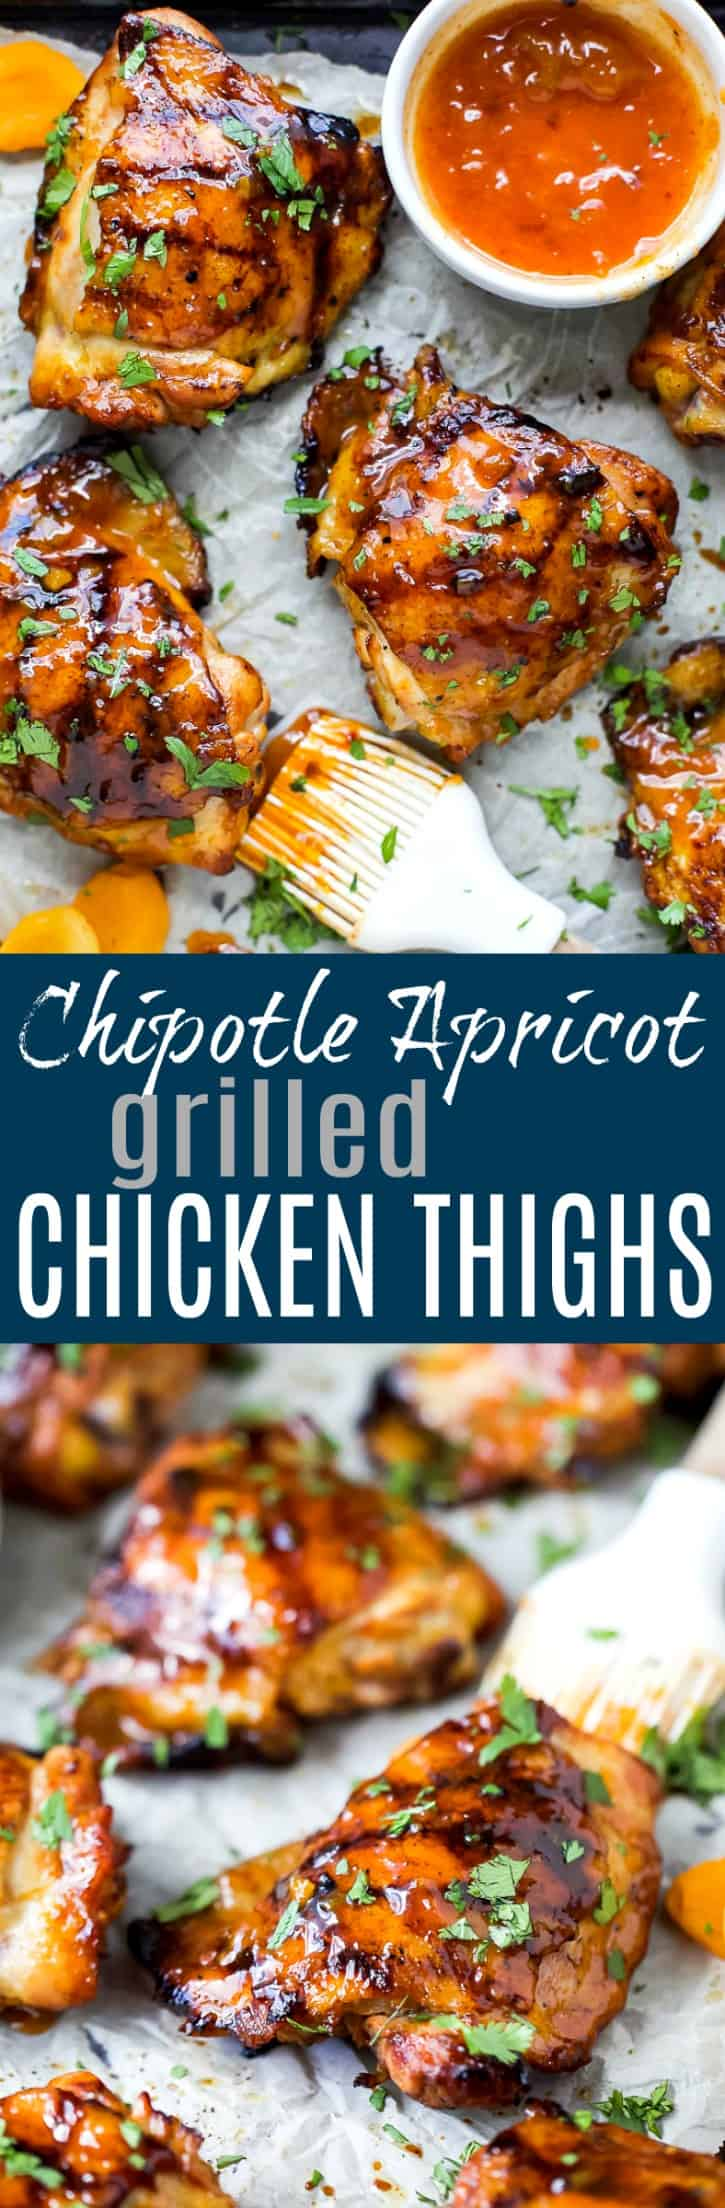 Pinterest collage for Chipotle Apricot Grilled Chicken Thighs recipe